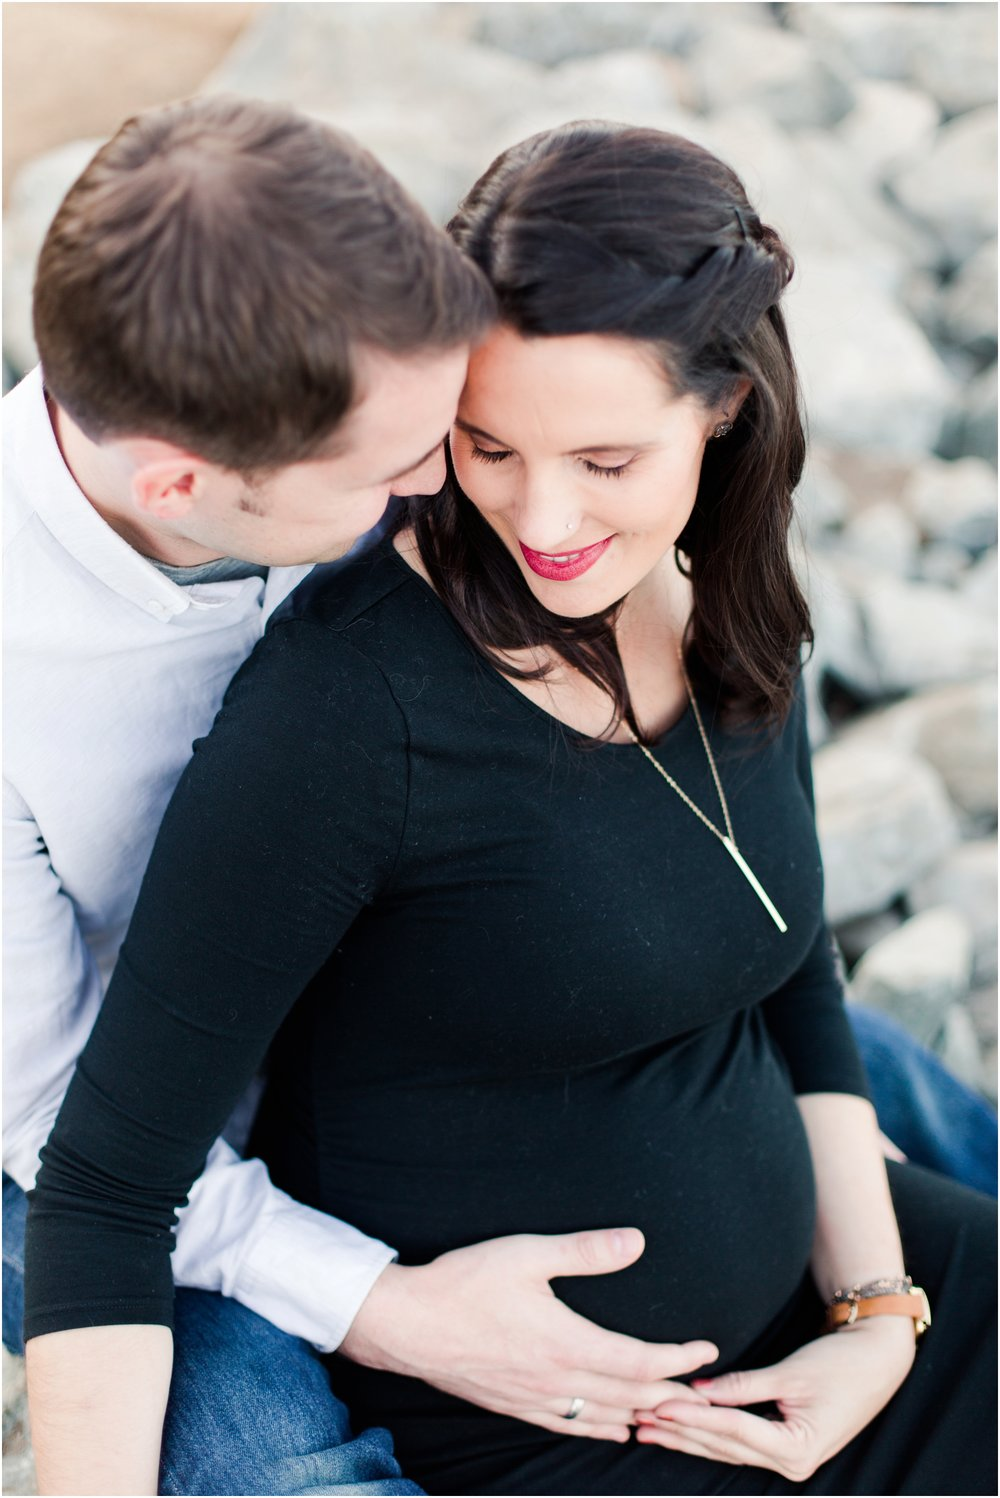 Crissy Field San Francisco maternity pictures by Briana Calderon Photography_0281.jpg